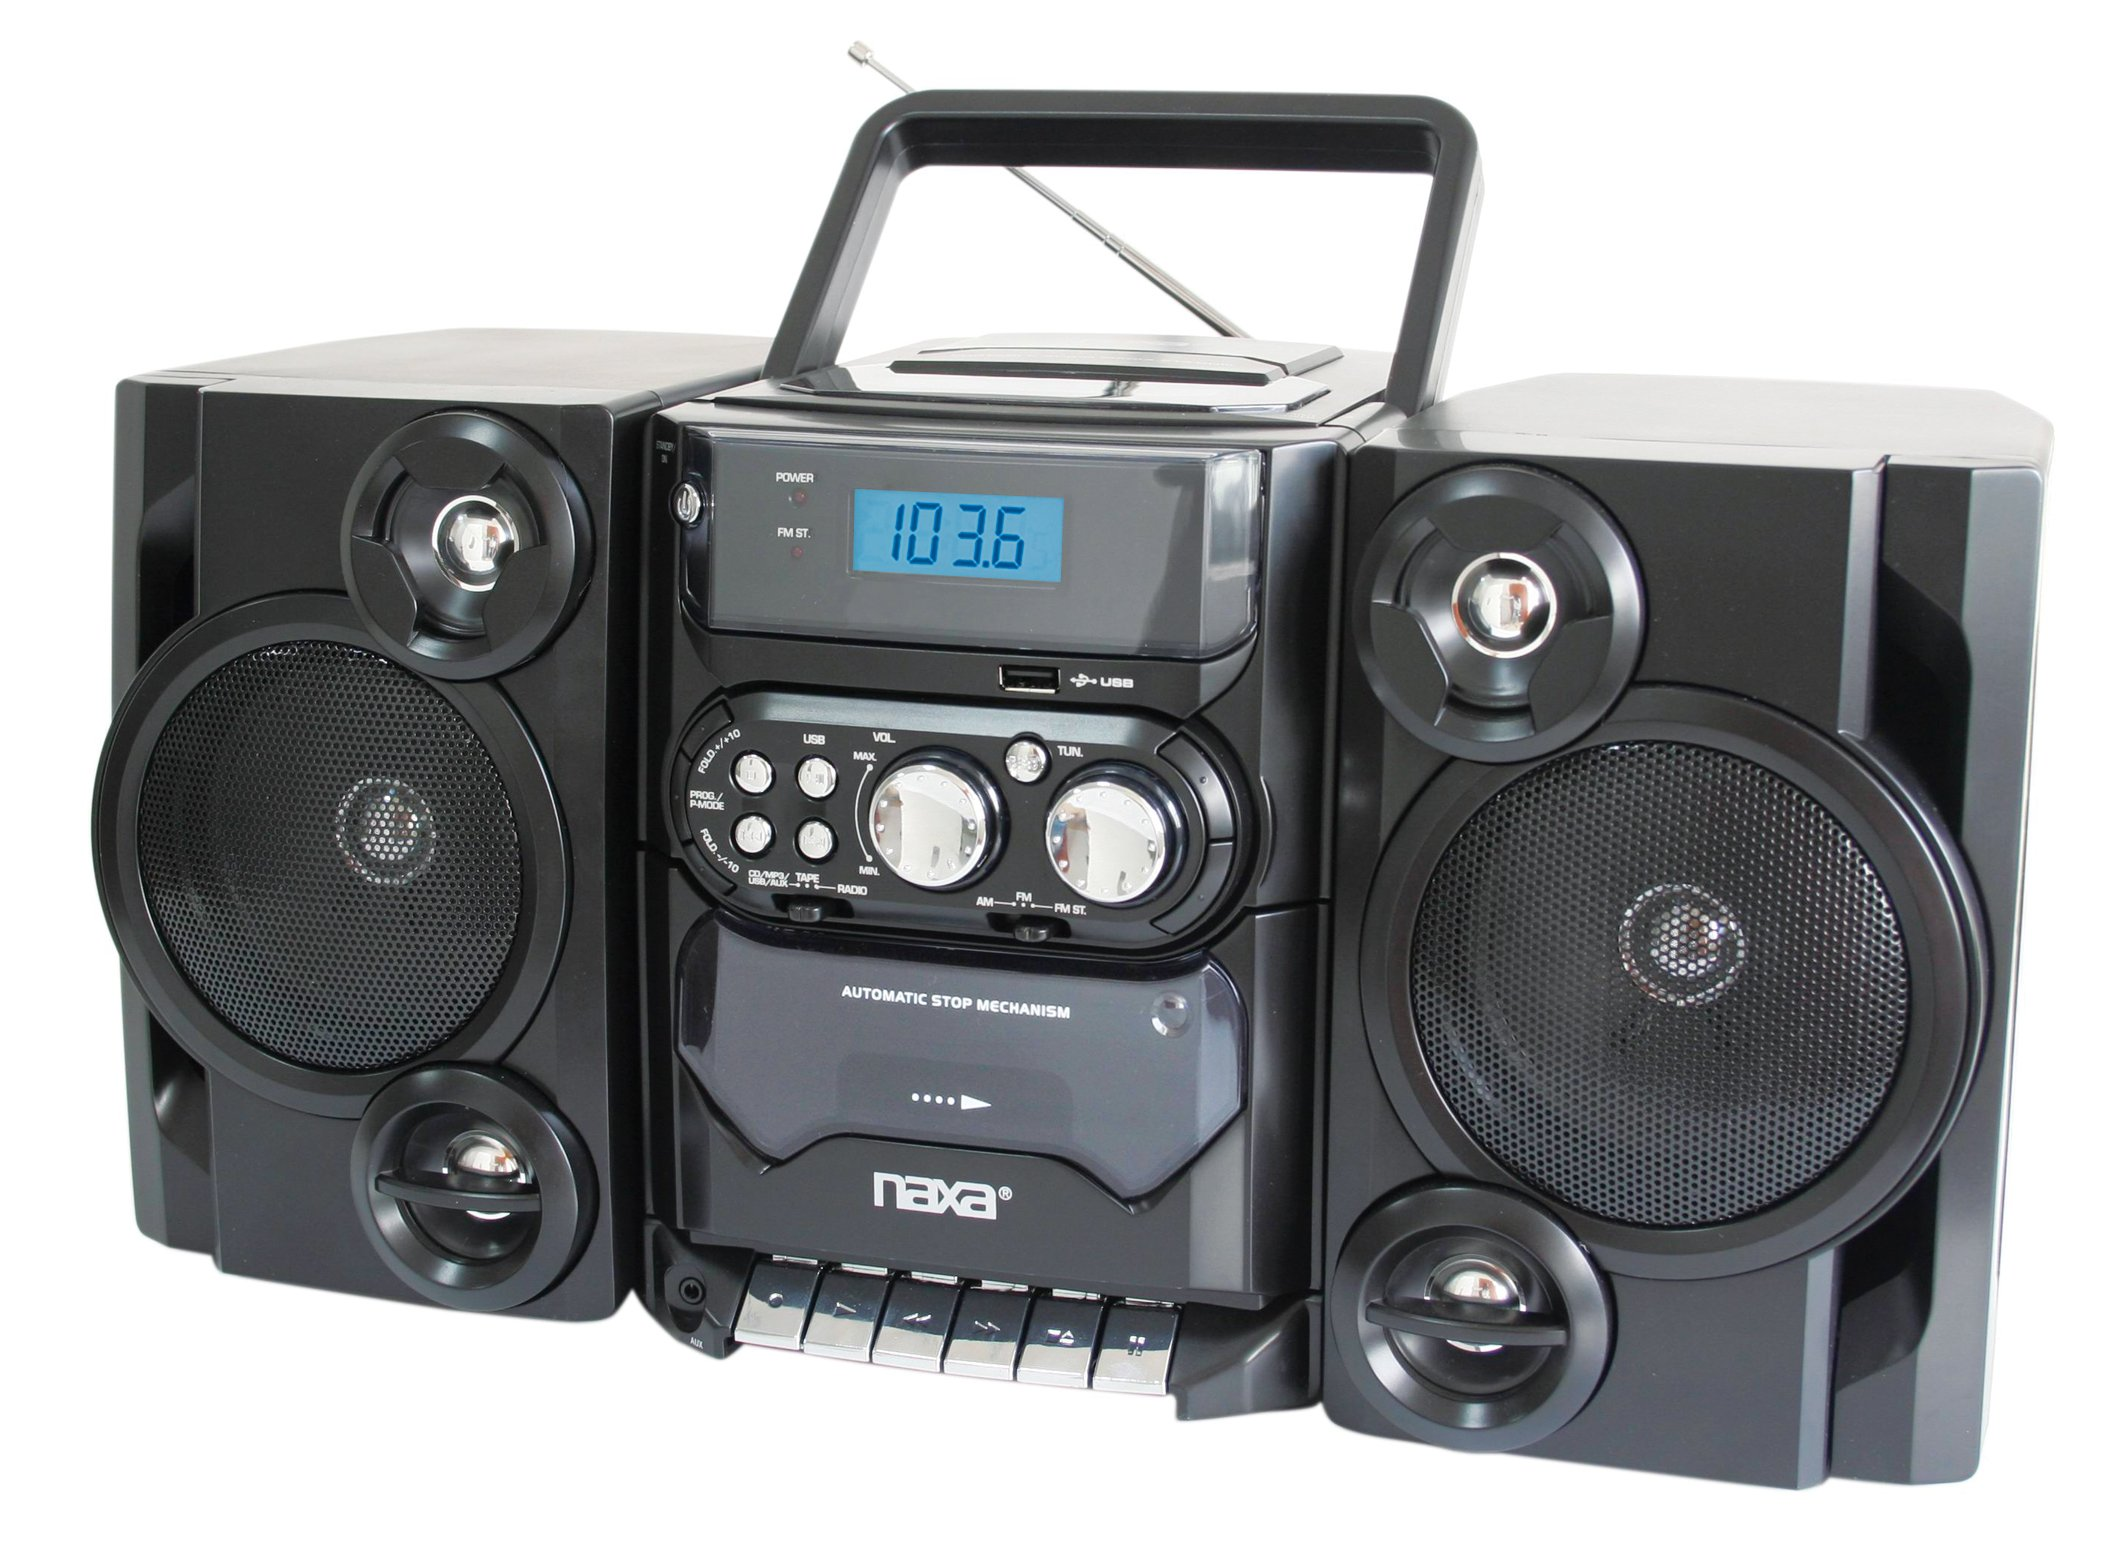 NAXA Electronics Portable MP3/CD Player with AM/FM Stereo Radio and Cassette Player/Recorder by Naxa Electronics